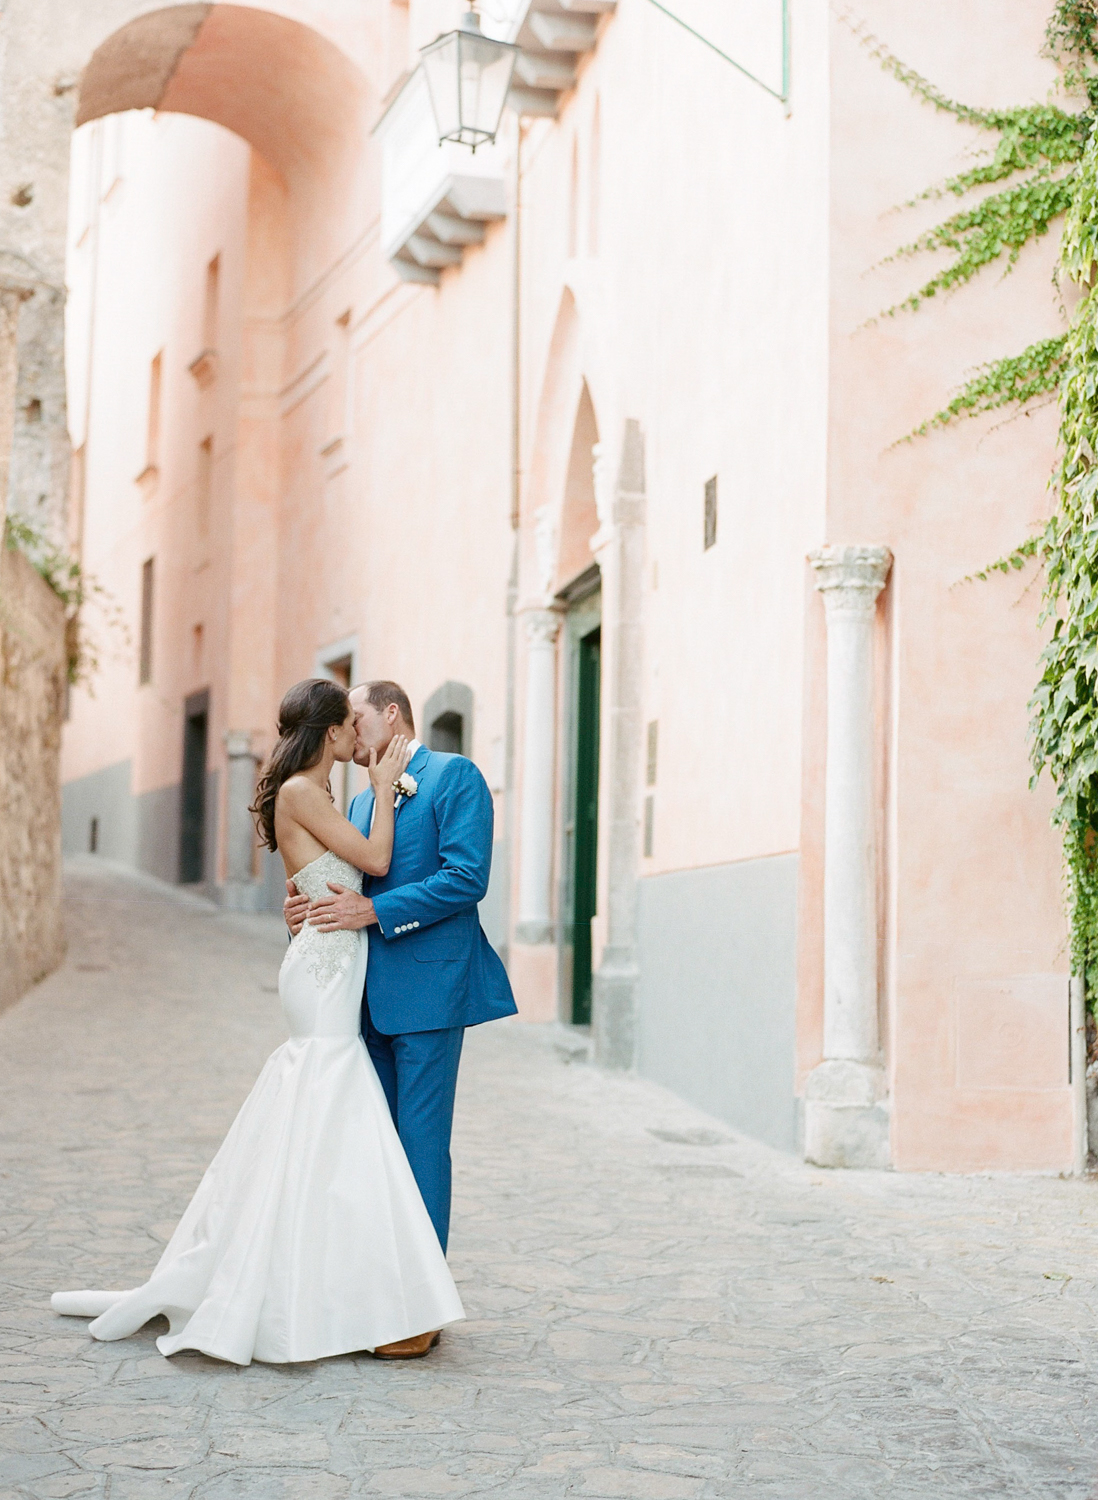 The bride and groom kiss on a street in Ravello, Italy on the Amalfi Coast; Sylvie Gil Photography